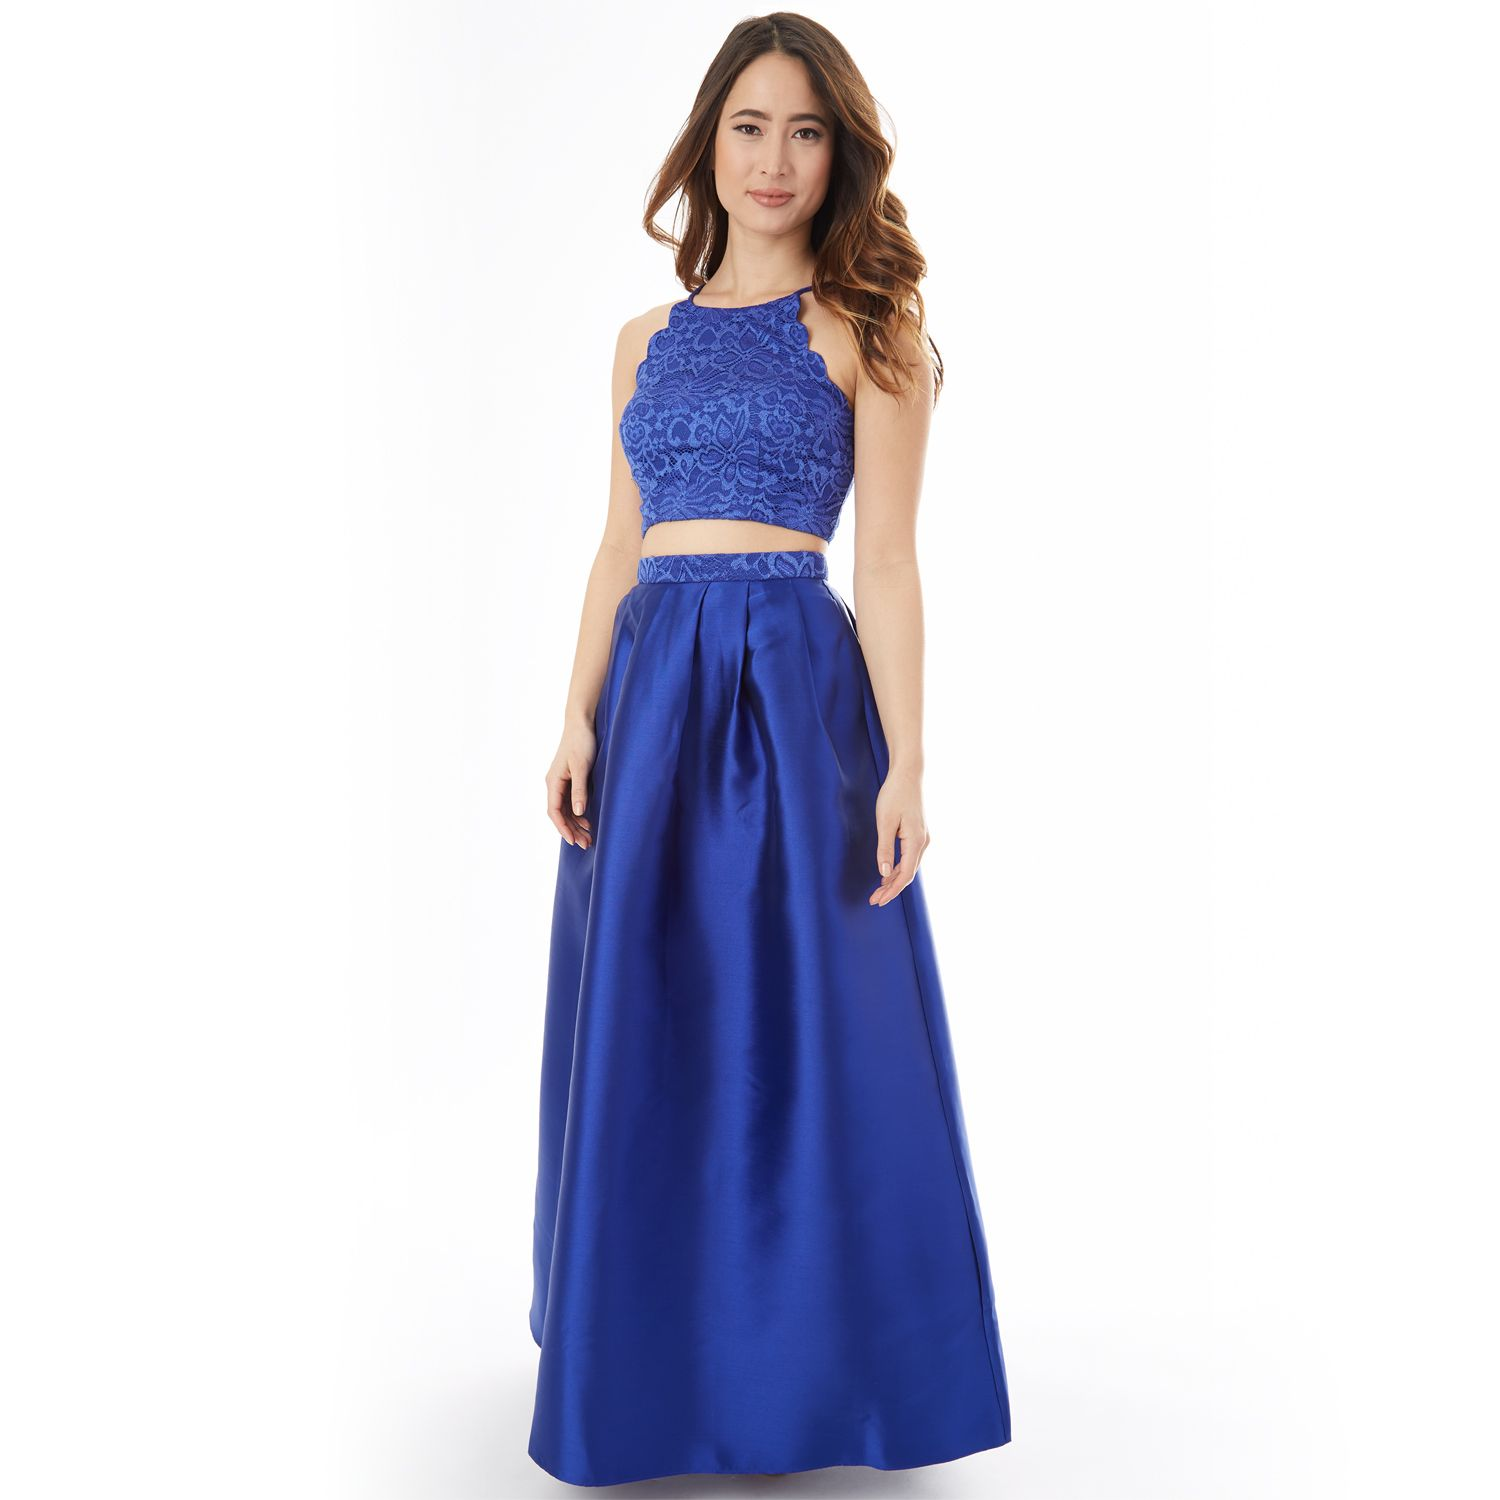 prom dresses juniors,teenage prom dresses,prom dress juniors,vera wang dresses prom 2018,clearance junior prom dresses,prom dress stores in cincinnati,cheap long prom petite dresses satin blue under 50 dollars,prom dress stores in tupelo ms,prom dresses from$20 to $100,prom dresses stores in chicago il,go daddy prom dresses,80s prom dresses on sale for under 50,50s girl prom dresses 2018,prom dress shops in tupelo ms,prom dress shops sacramento,prom dresses 2018 portland,prom dresses charleston sc,fire and ice prom dresses 2018,omaha prom dress stores,prom dress shops in montana,prom dress stores in watertown,pittsburgh prom dress shops,prom dresses shops in tulsa ok,prom dress shops bangor maine,prom dress shops in bangor maine,juniors prom dress,ready to ship prom dresses under 200,winter formal dresses 2018 macy's,formal dresses junior,prom dresses in fort worth tx,